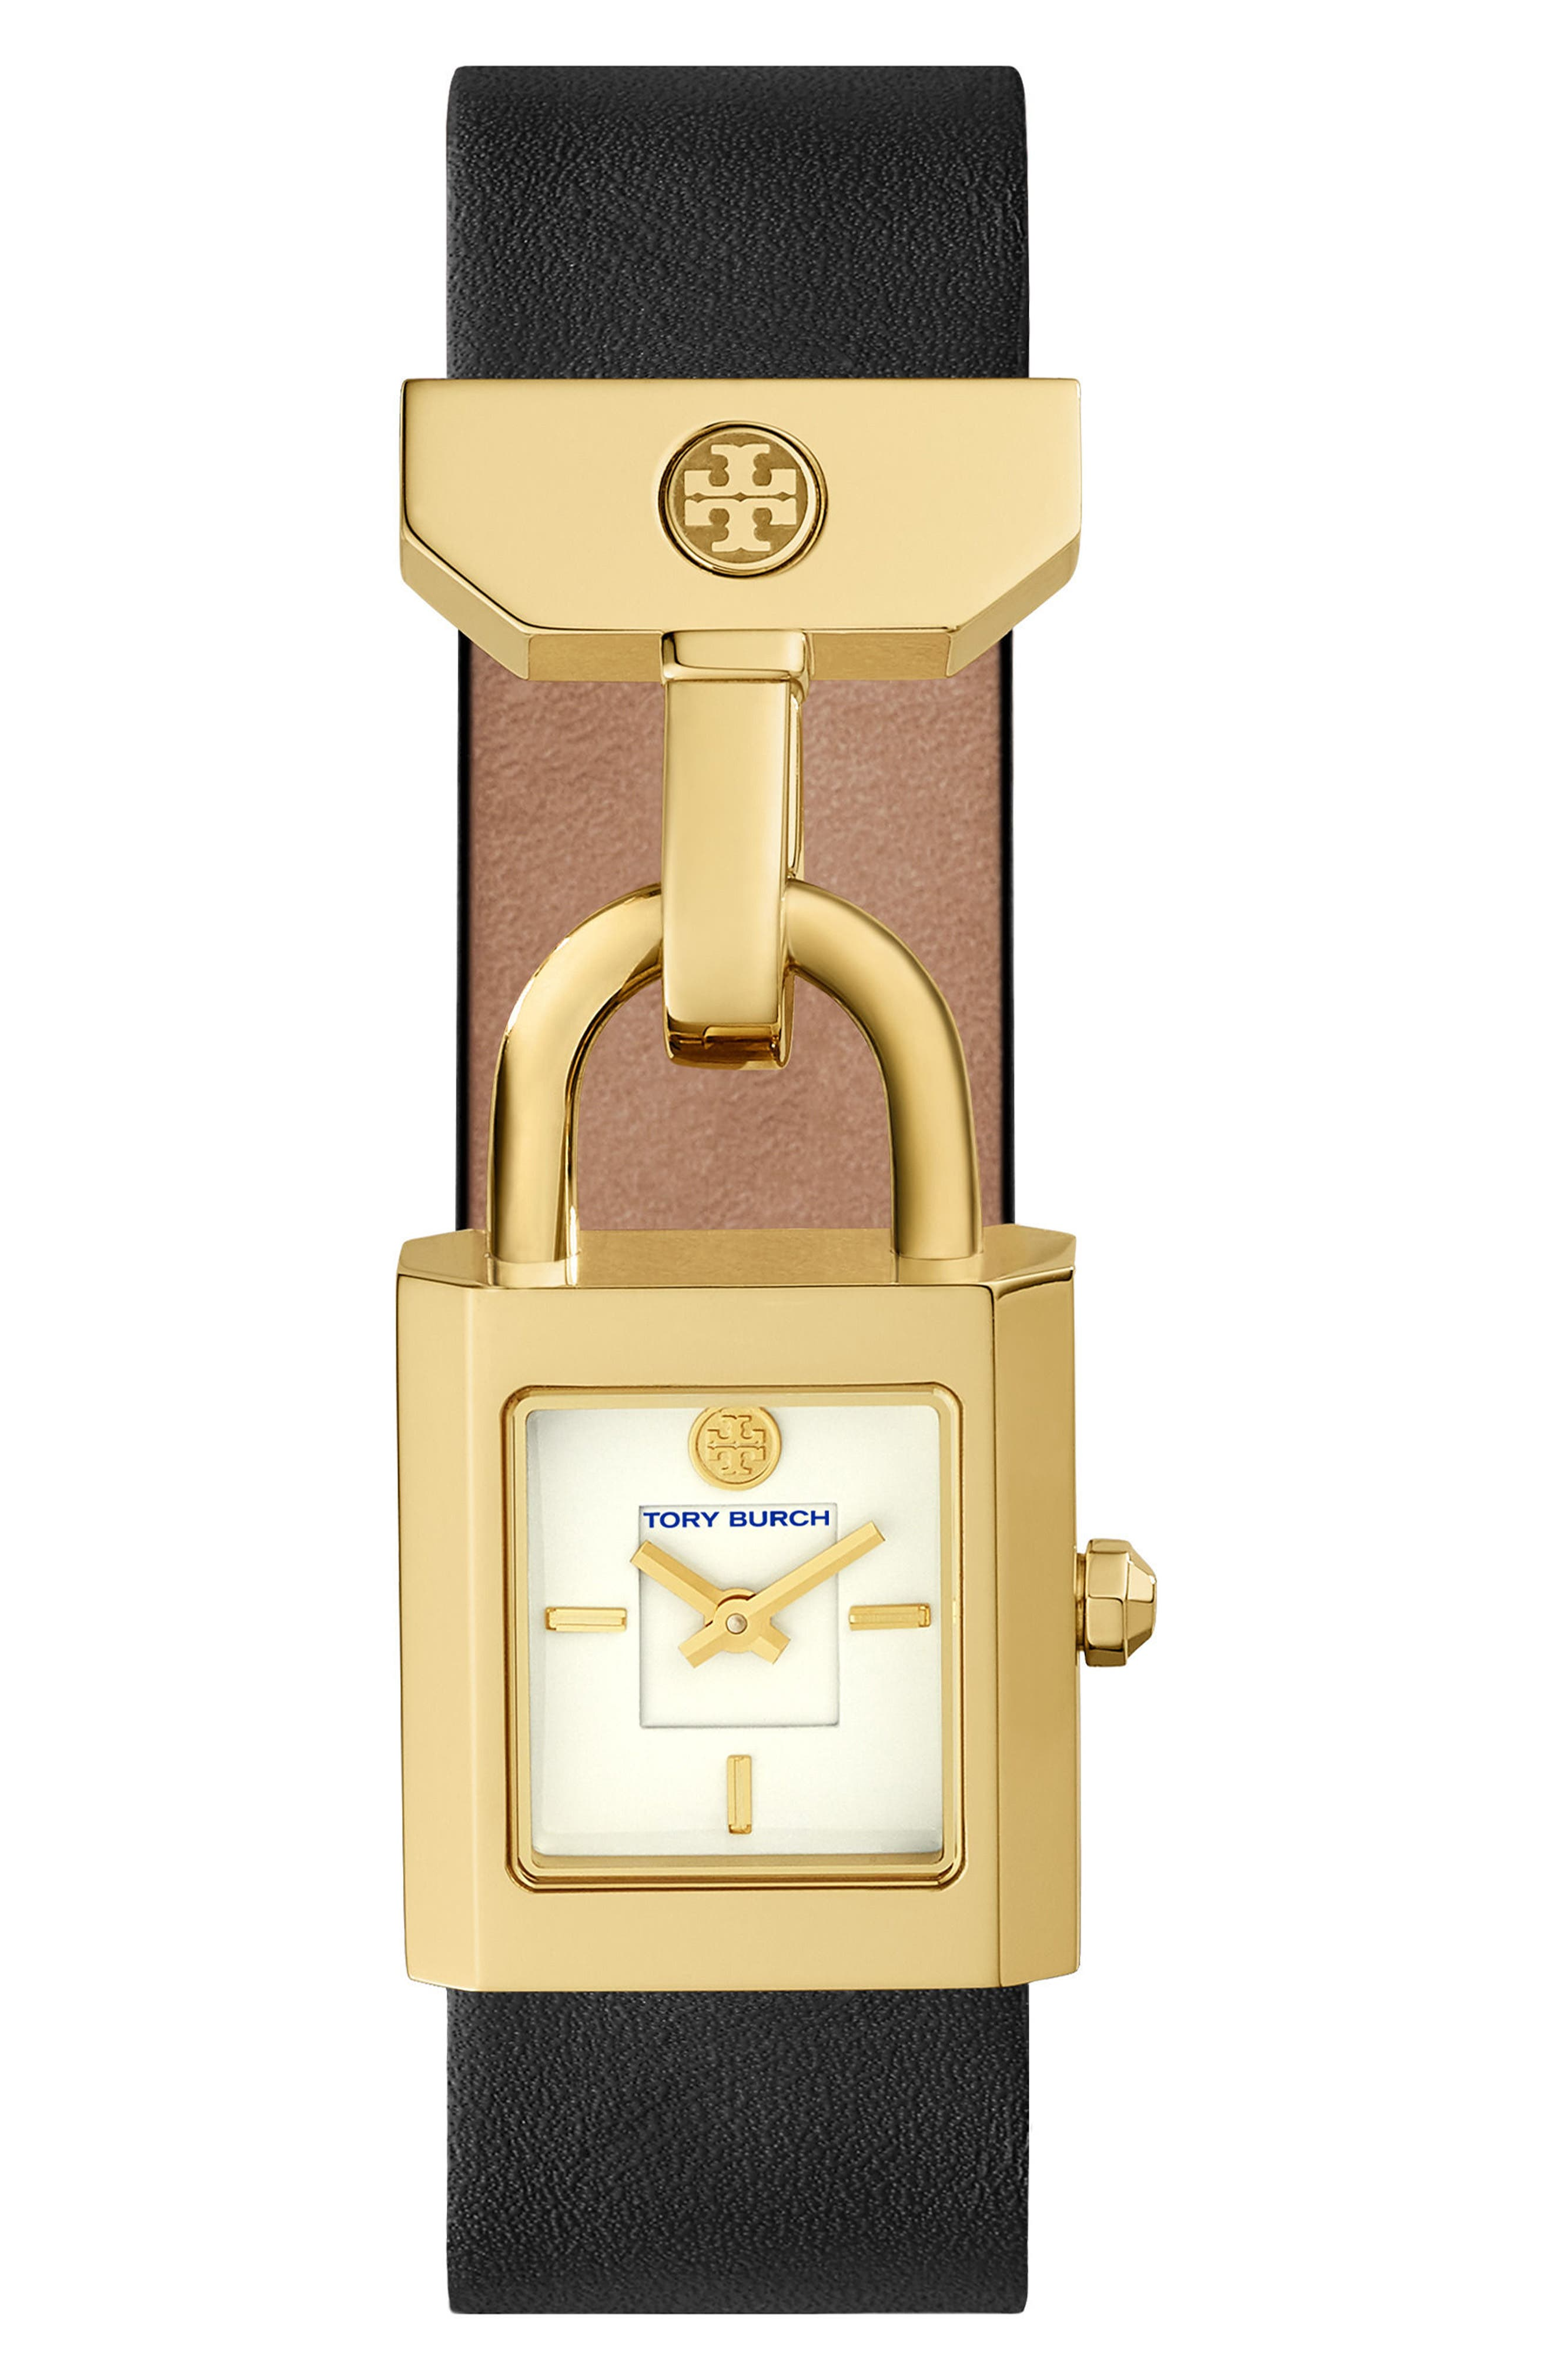 TORY BURCH Surrey Leather Strap Watch, 22mm x 23.5mm